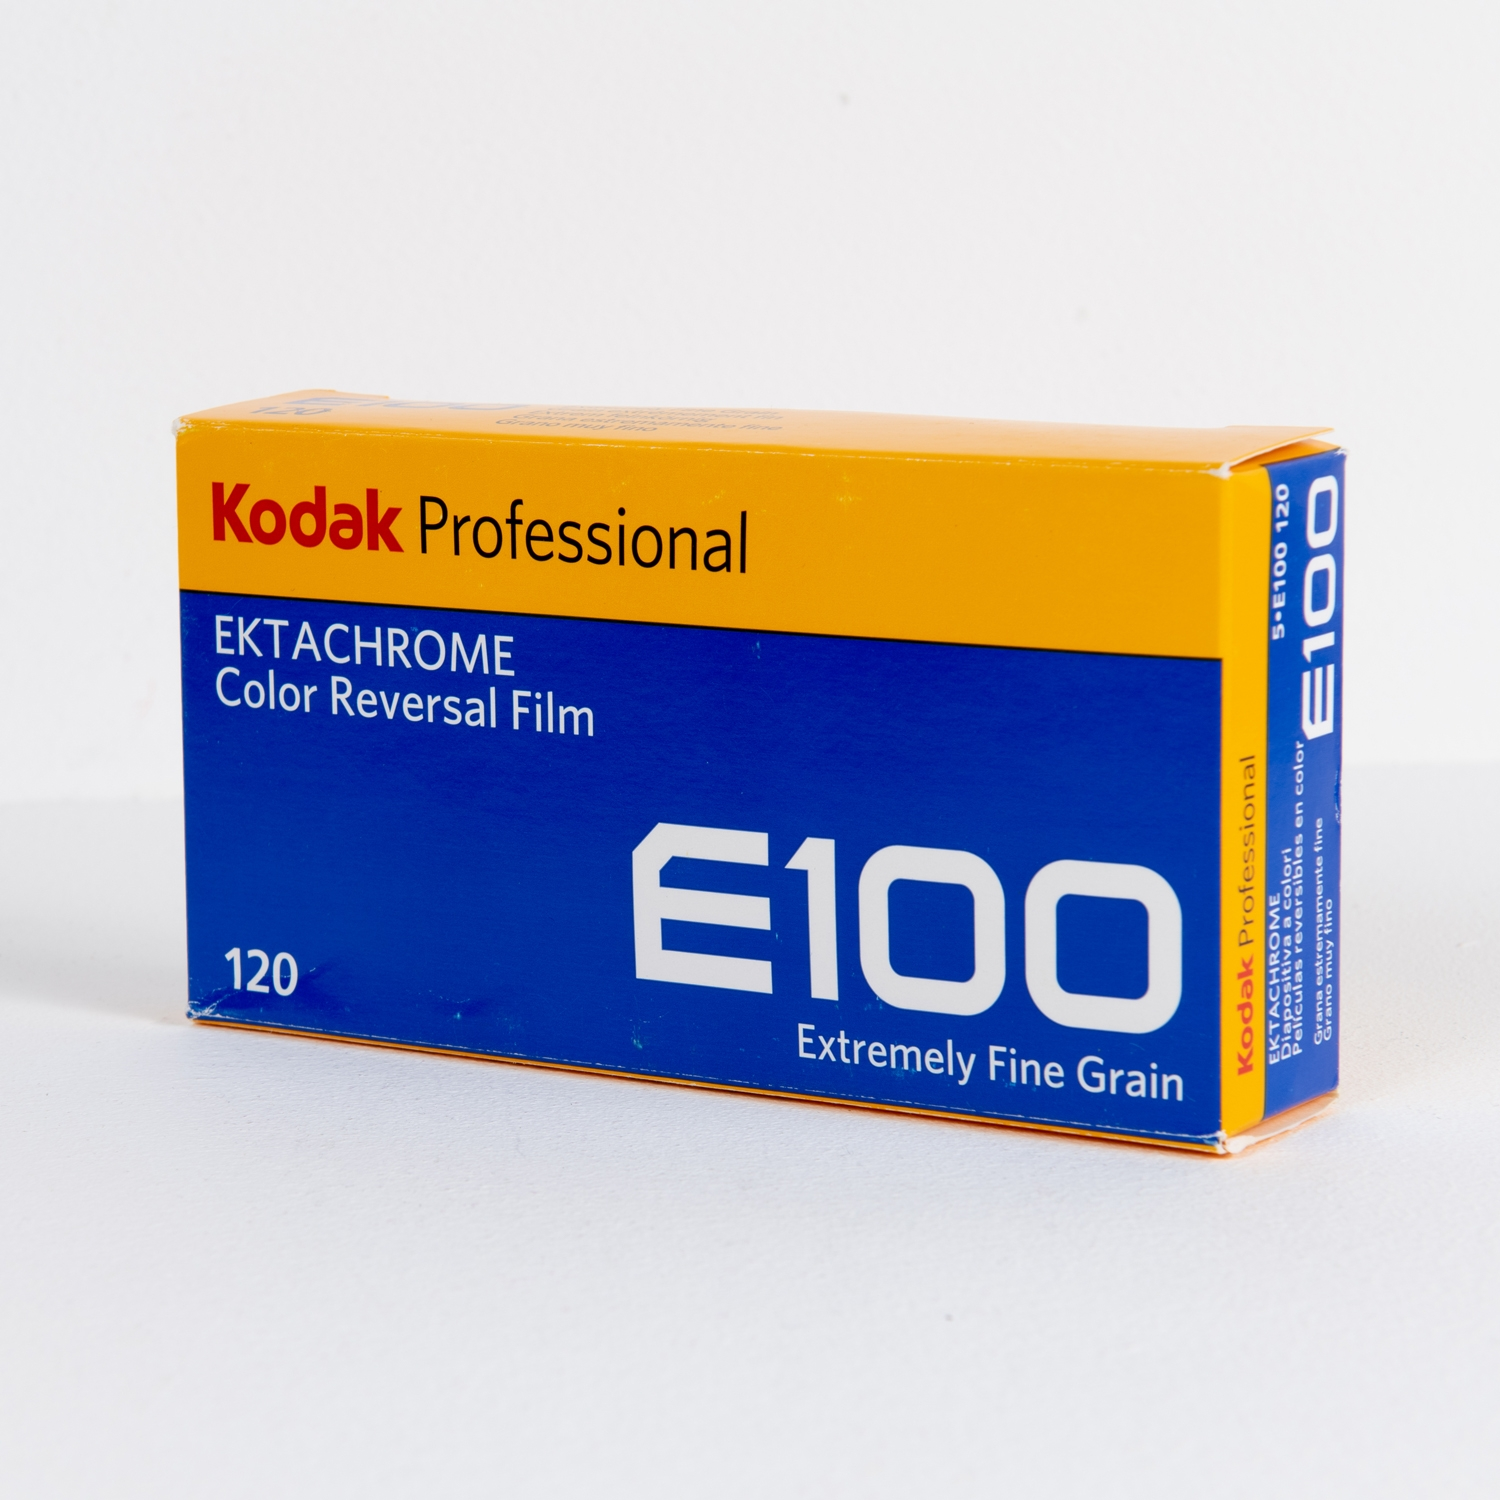 Kodak Ektachrome E100 (120) 5-Pack Color Reversal Film